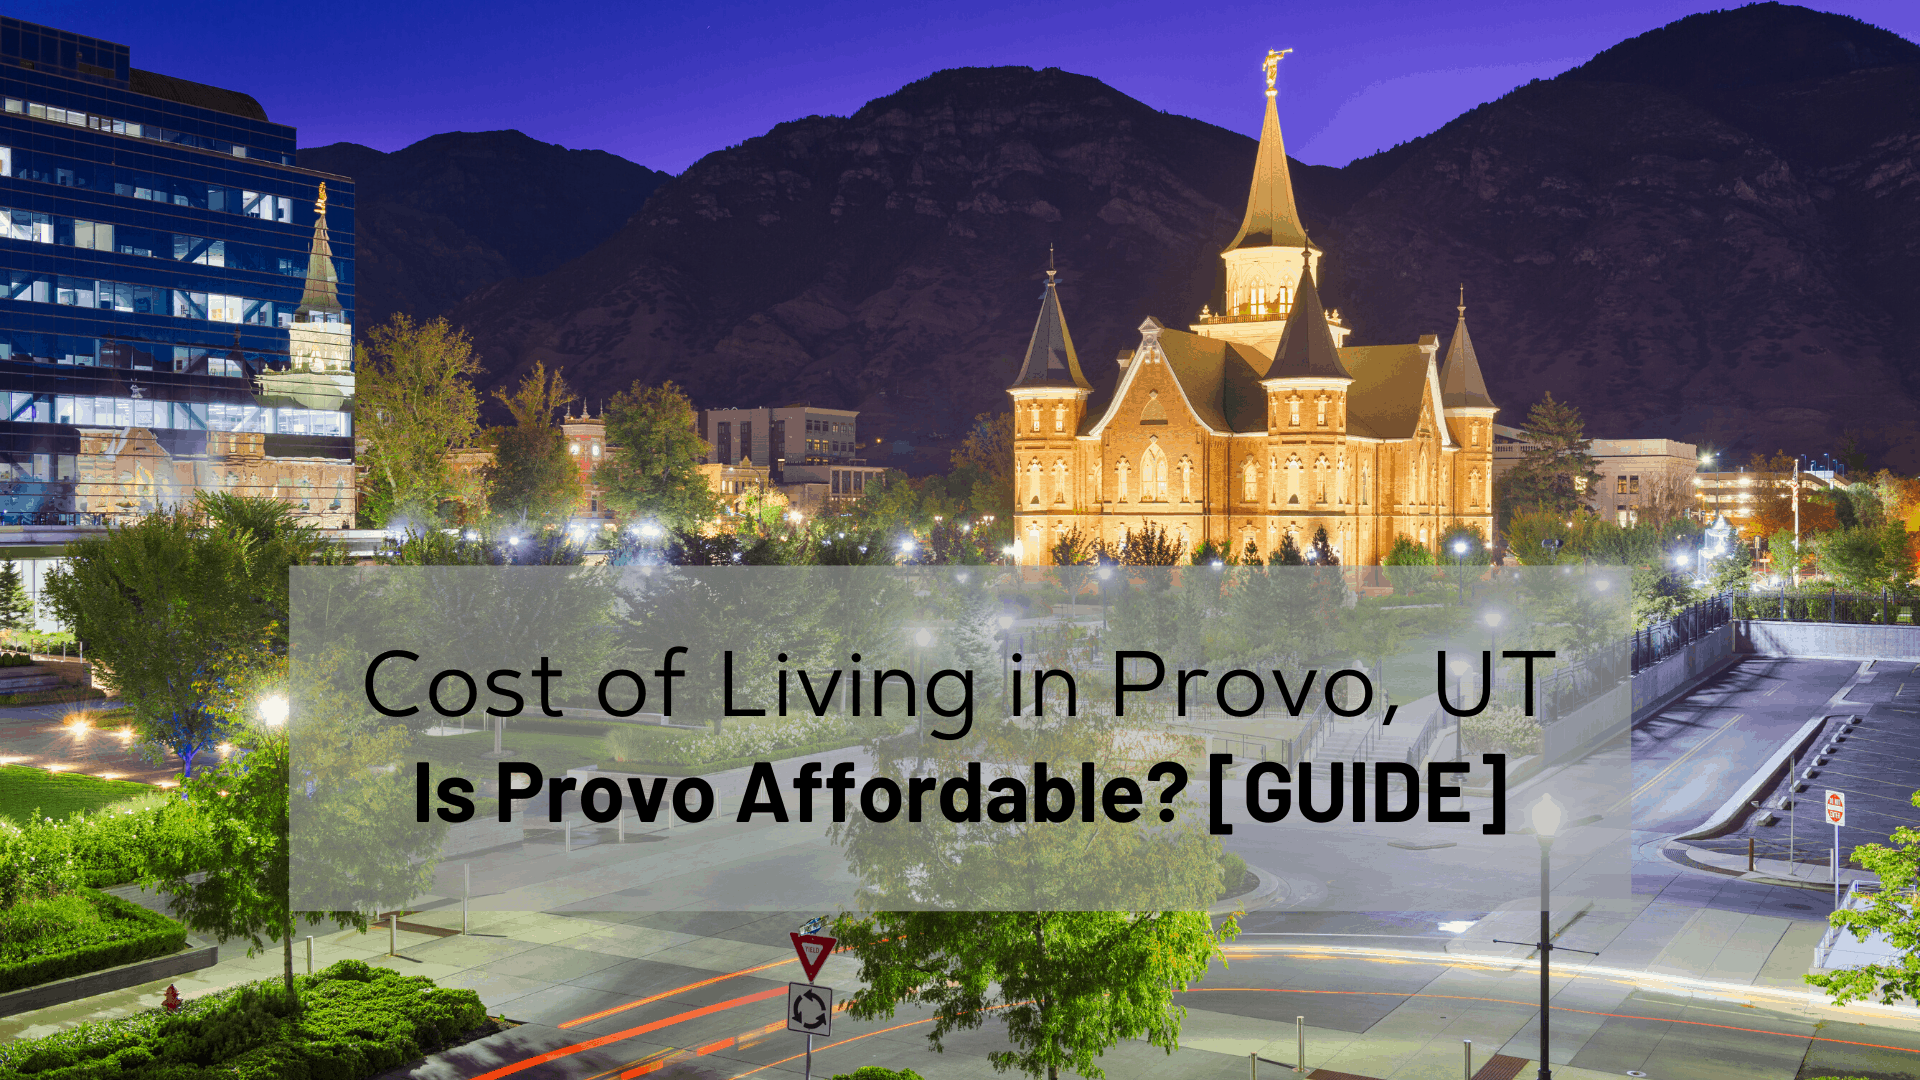 Cost Of Living In Provo Ut 2020 Is Provo Affordable Guide Wasatch Moving Co Salt Lake City Movers